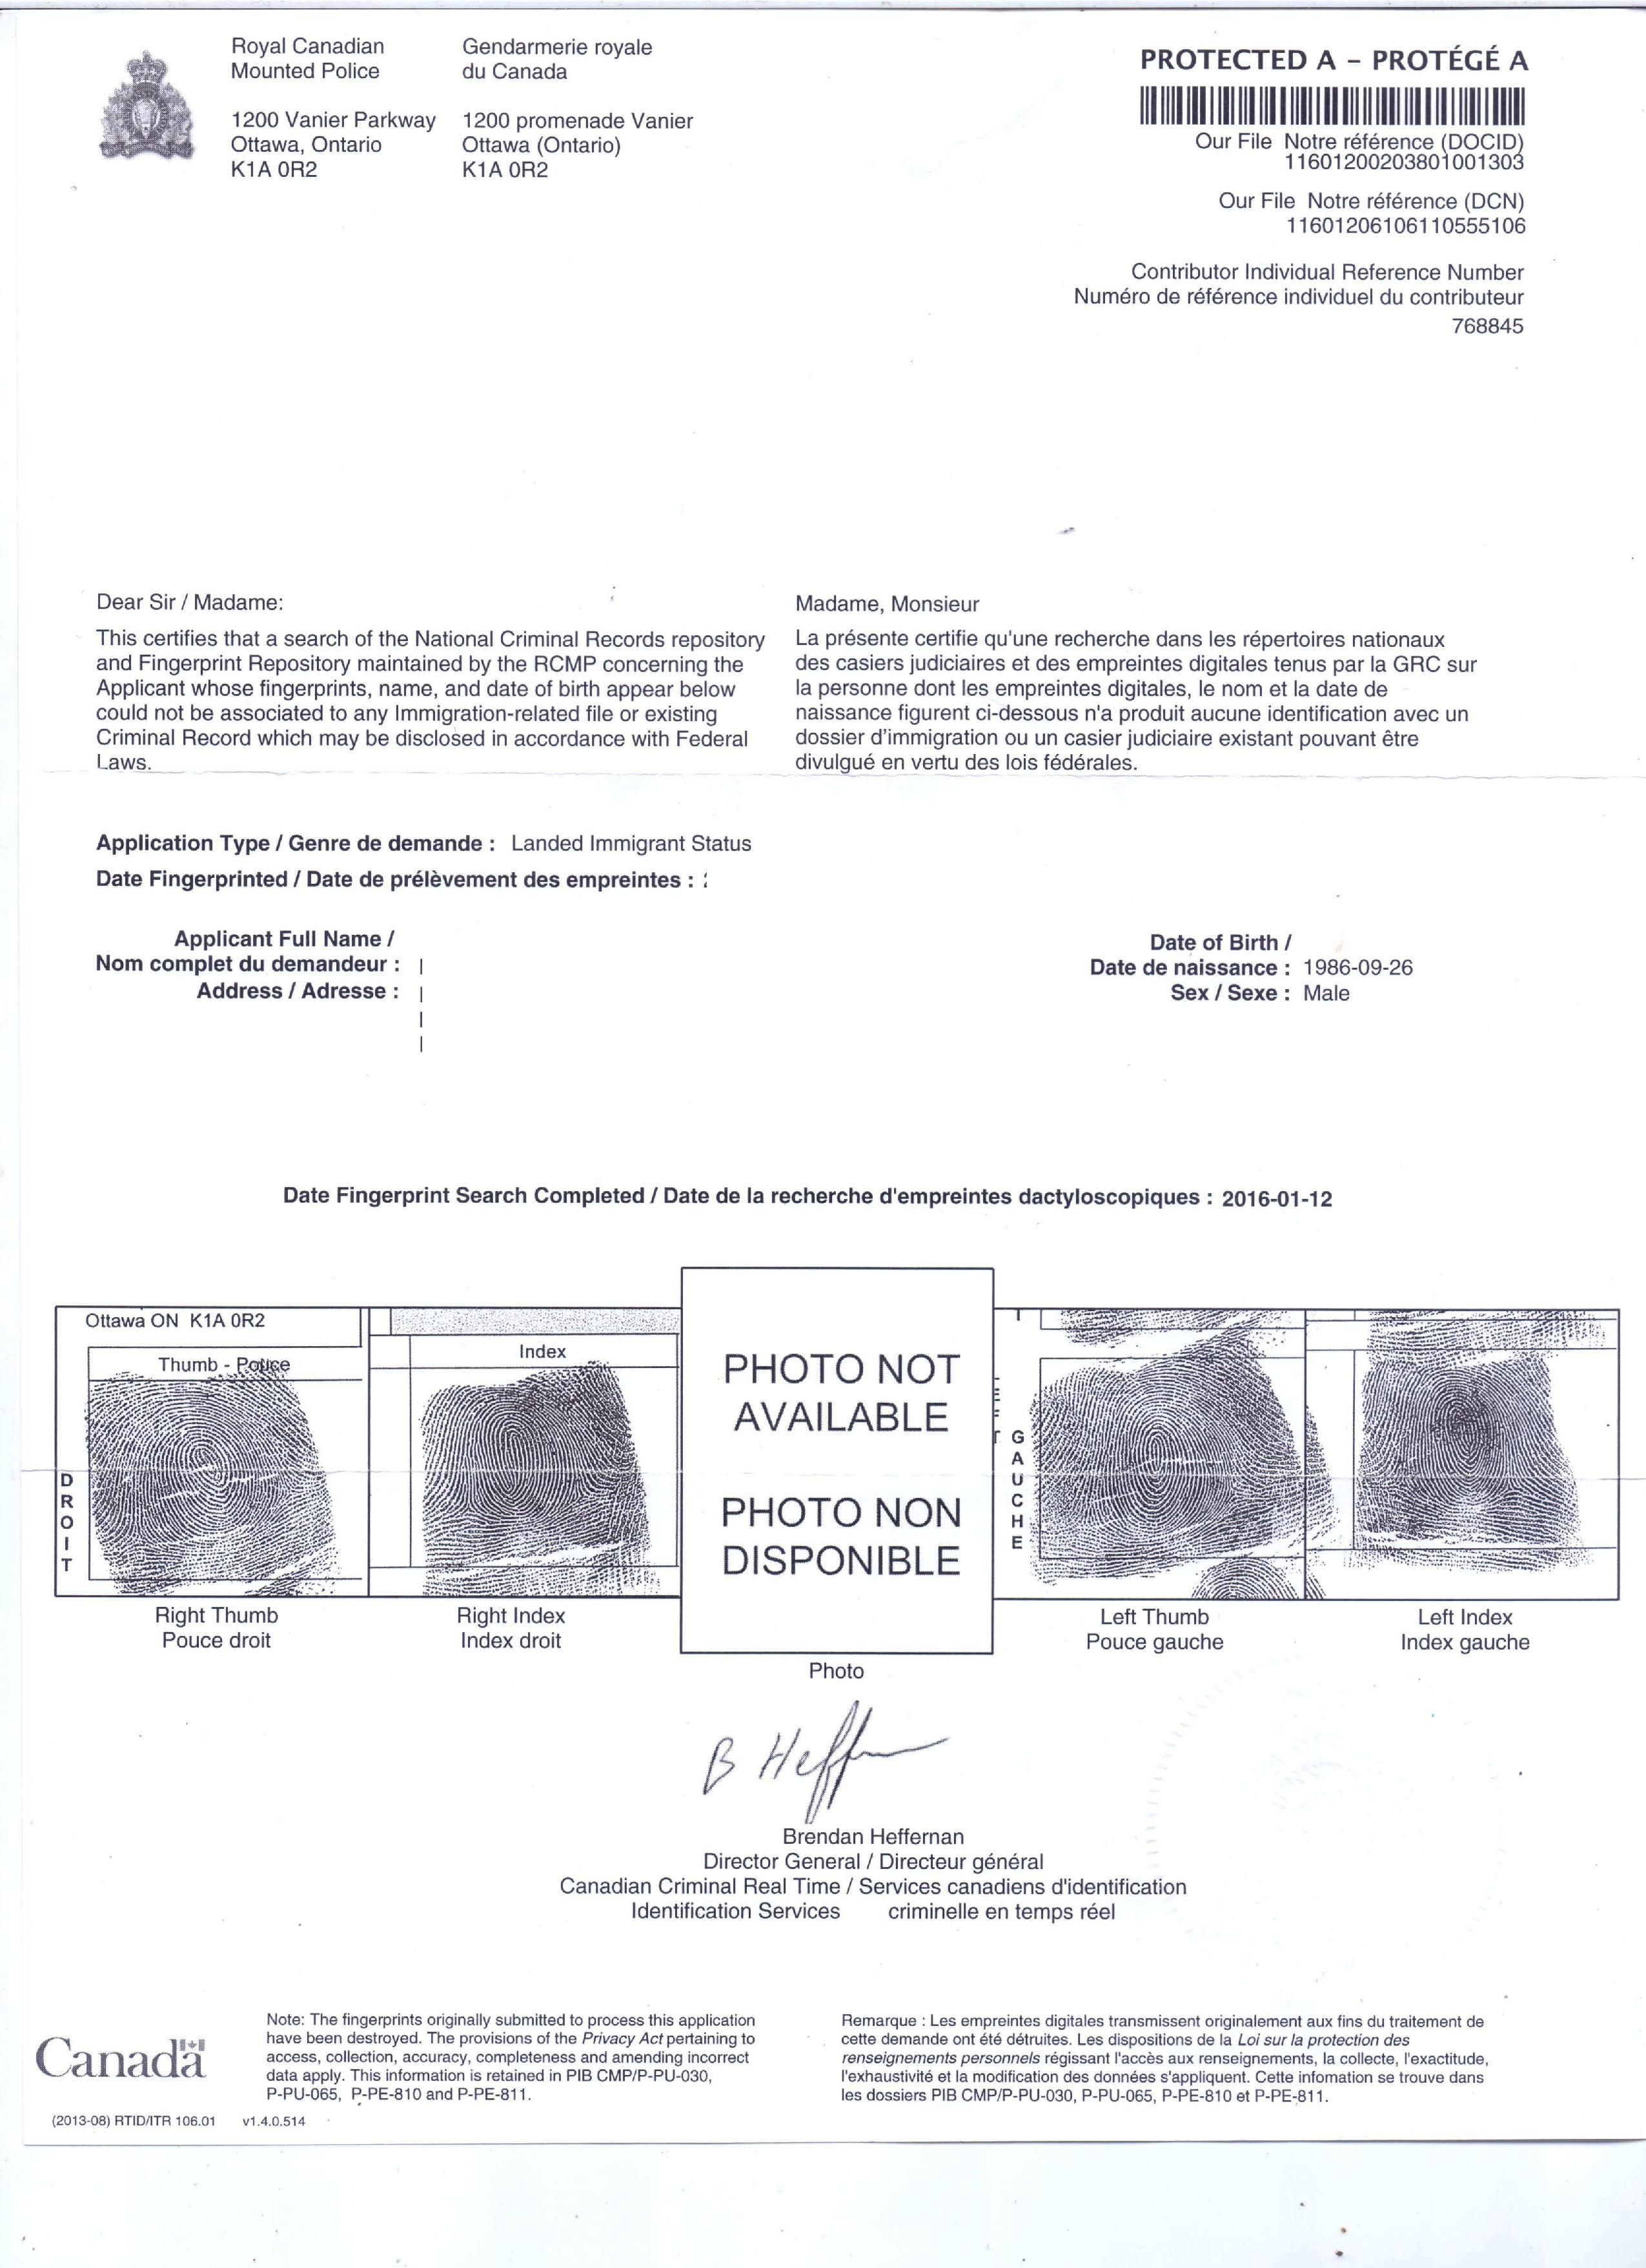 Police clearance certificate canada rcmp delhi mumbai ahemdabad pcc from rcmp delhi xflitez Image collections